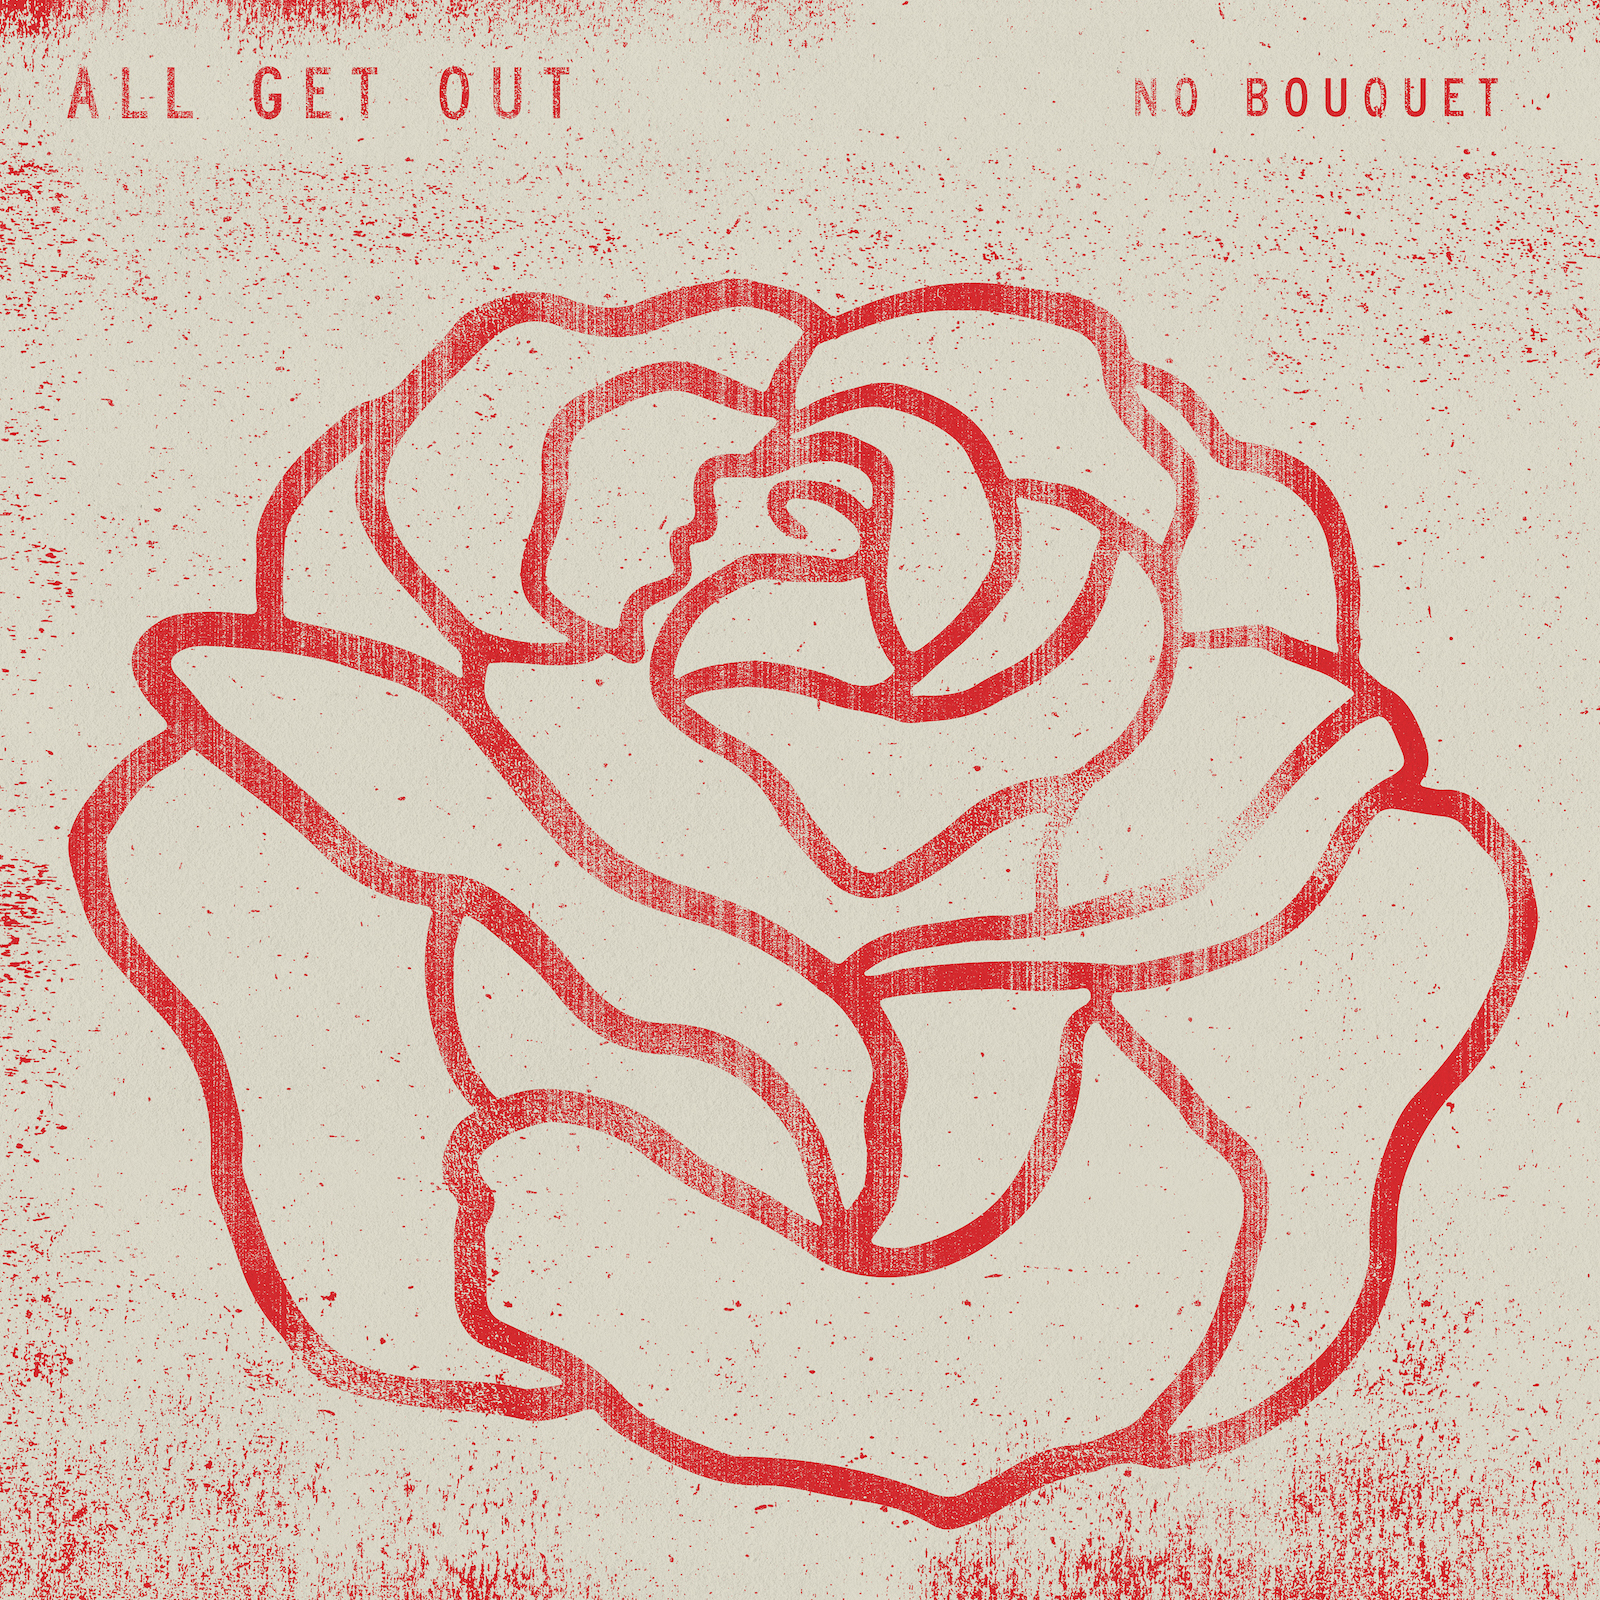 6. All Get Out - No Bouquet - Favorite Song: First Contact